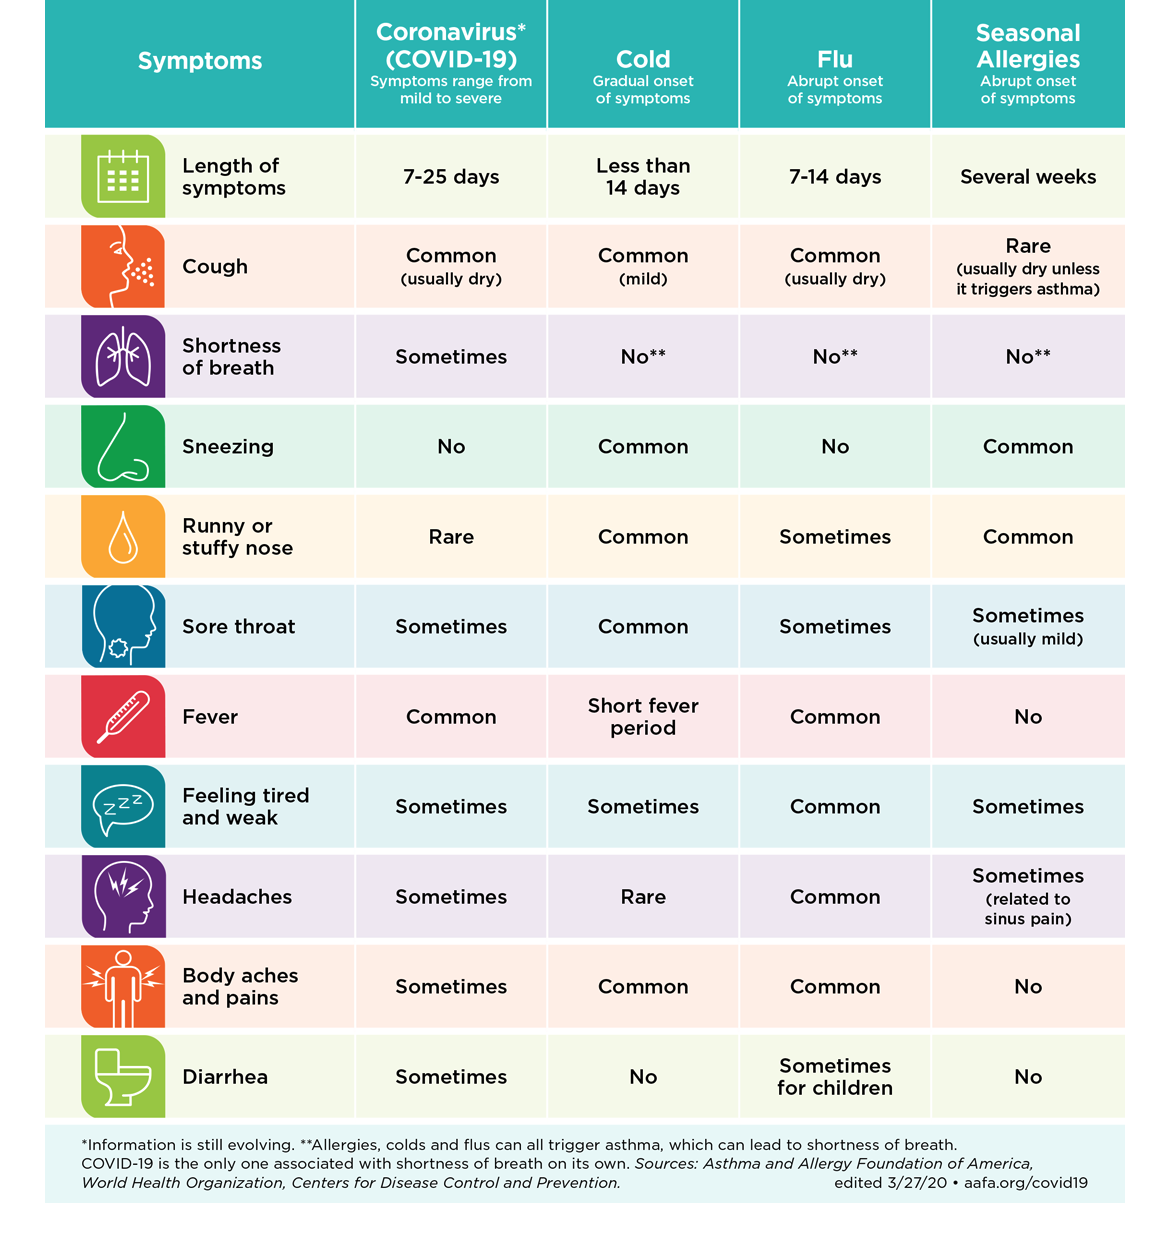 Abled.ALERT: Symptoms comparison map for Allergies, Cold, Flu and COVID-19. Text list in previous FAQS section.